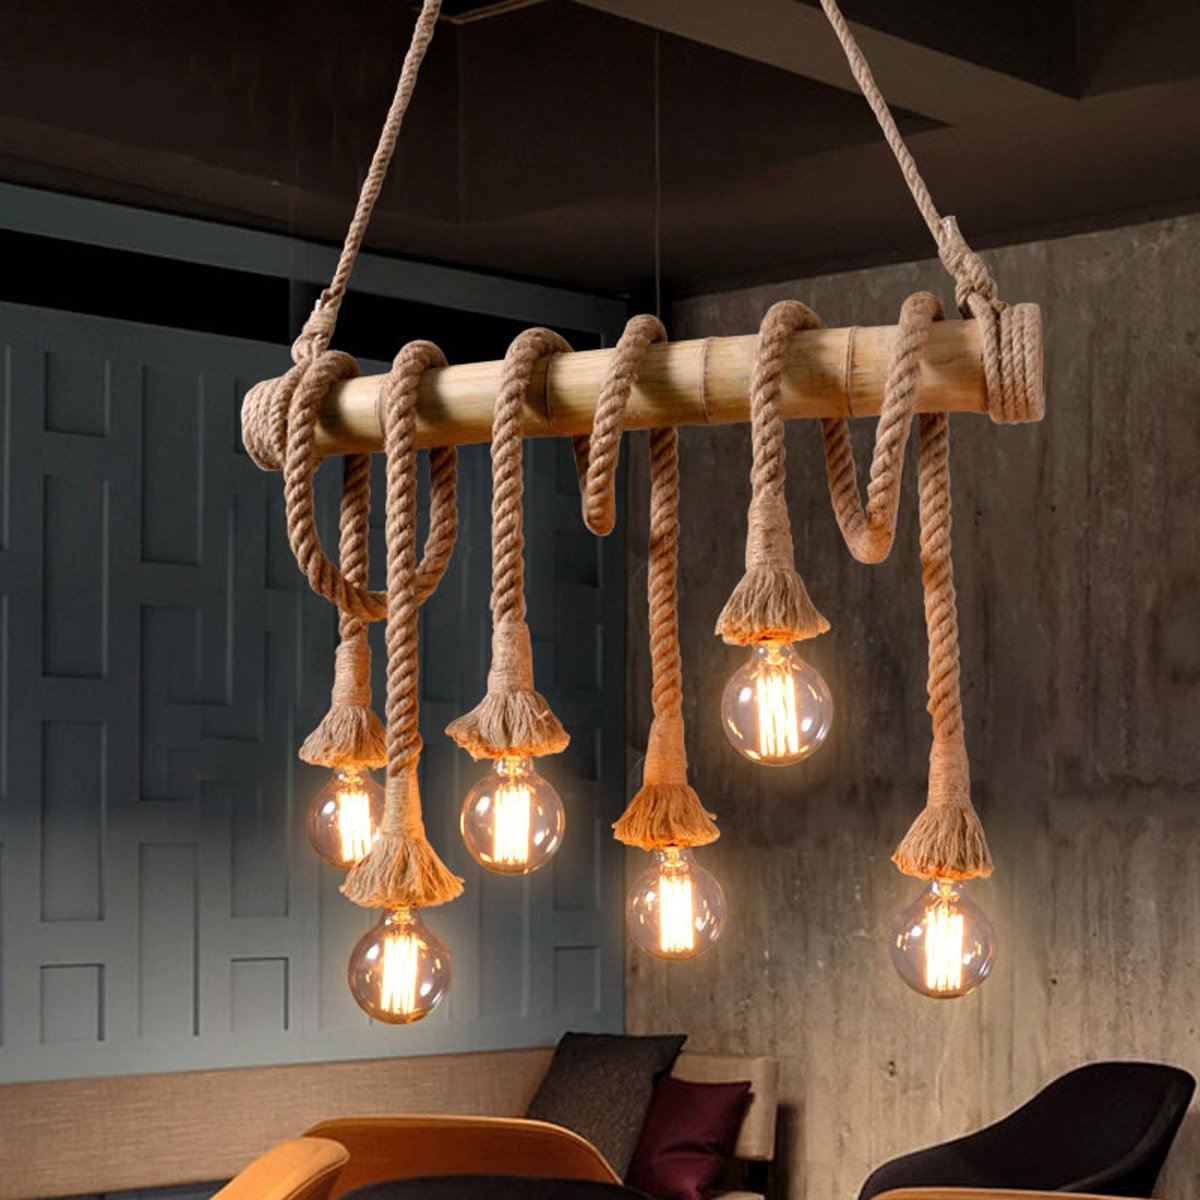 living vintage chandelier heads hemp new brightness rope room pp lights dining pendant light